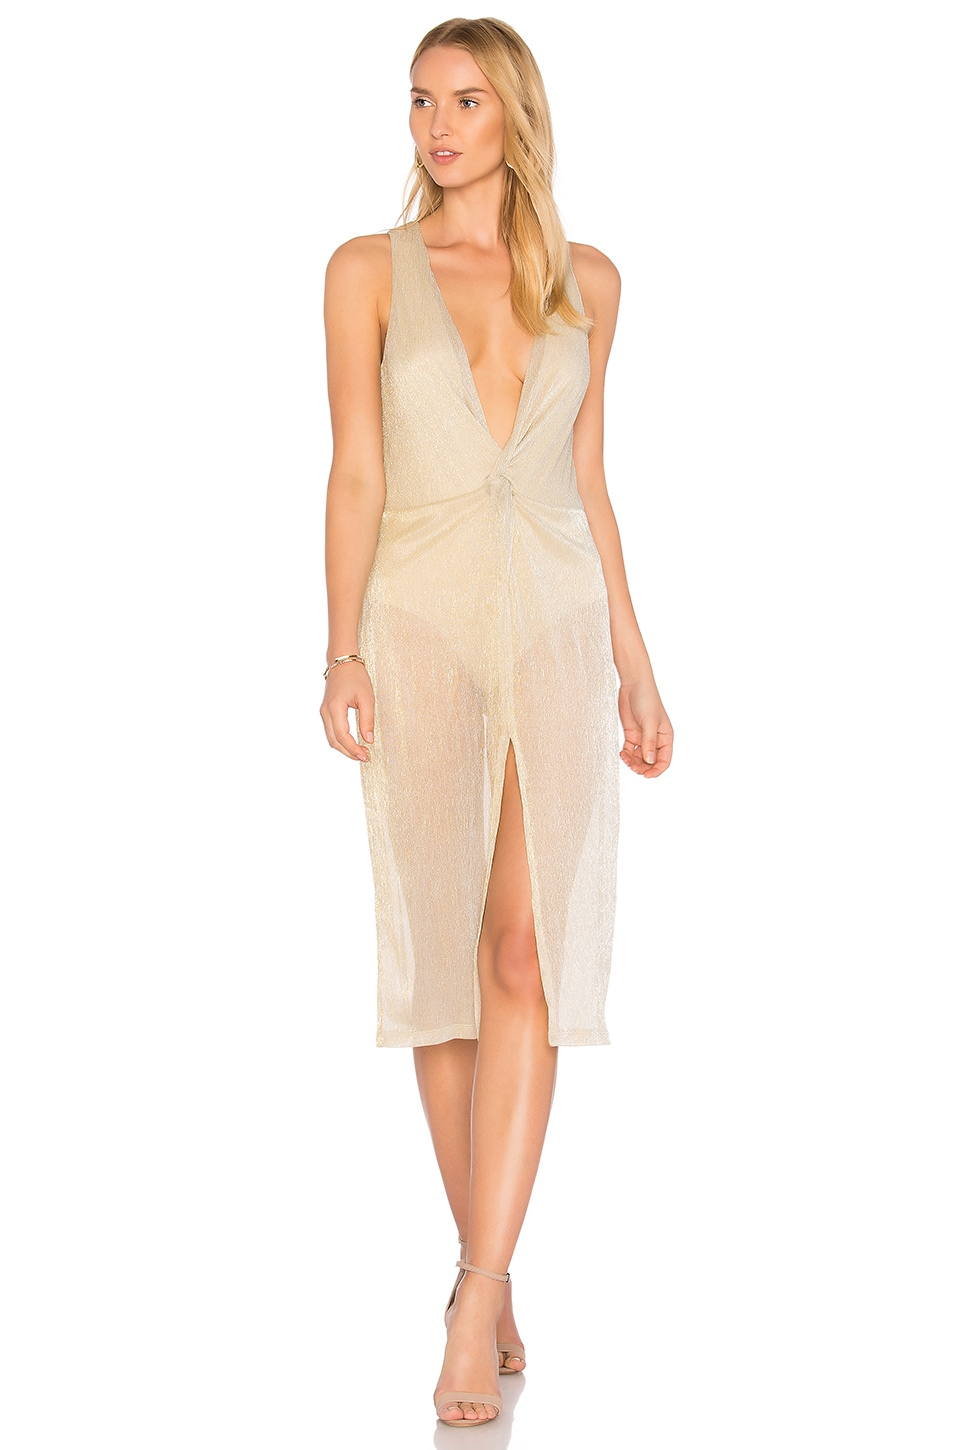 MAJORELLE Copacabana Dress in Bronze